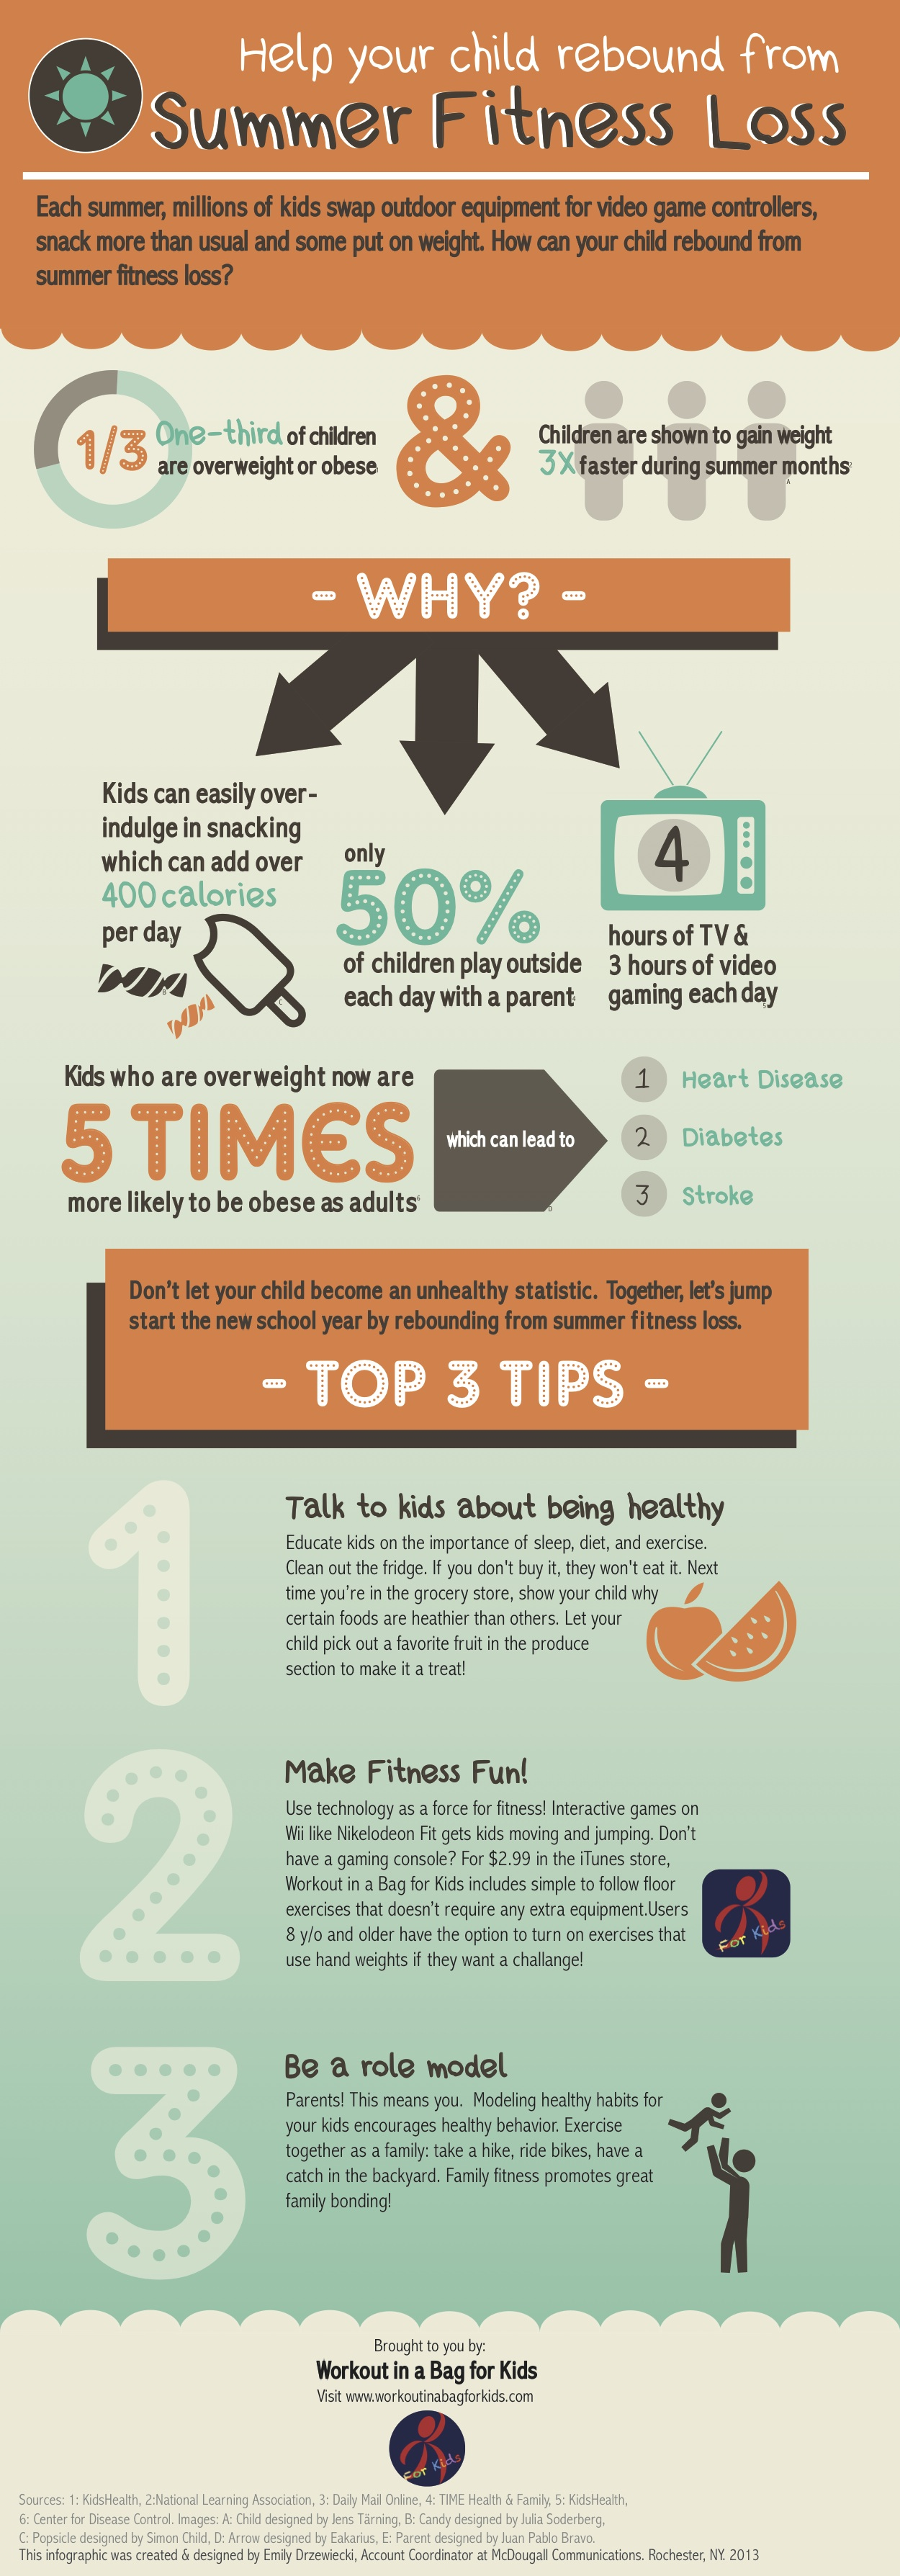 From Couch-Potato to Outdoors-Fun: Make the Healthy Shift this Summer - Infographic